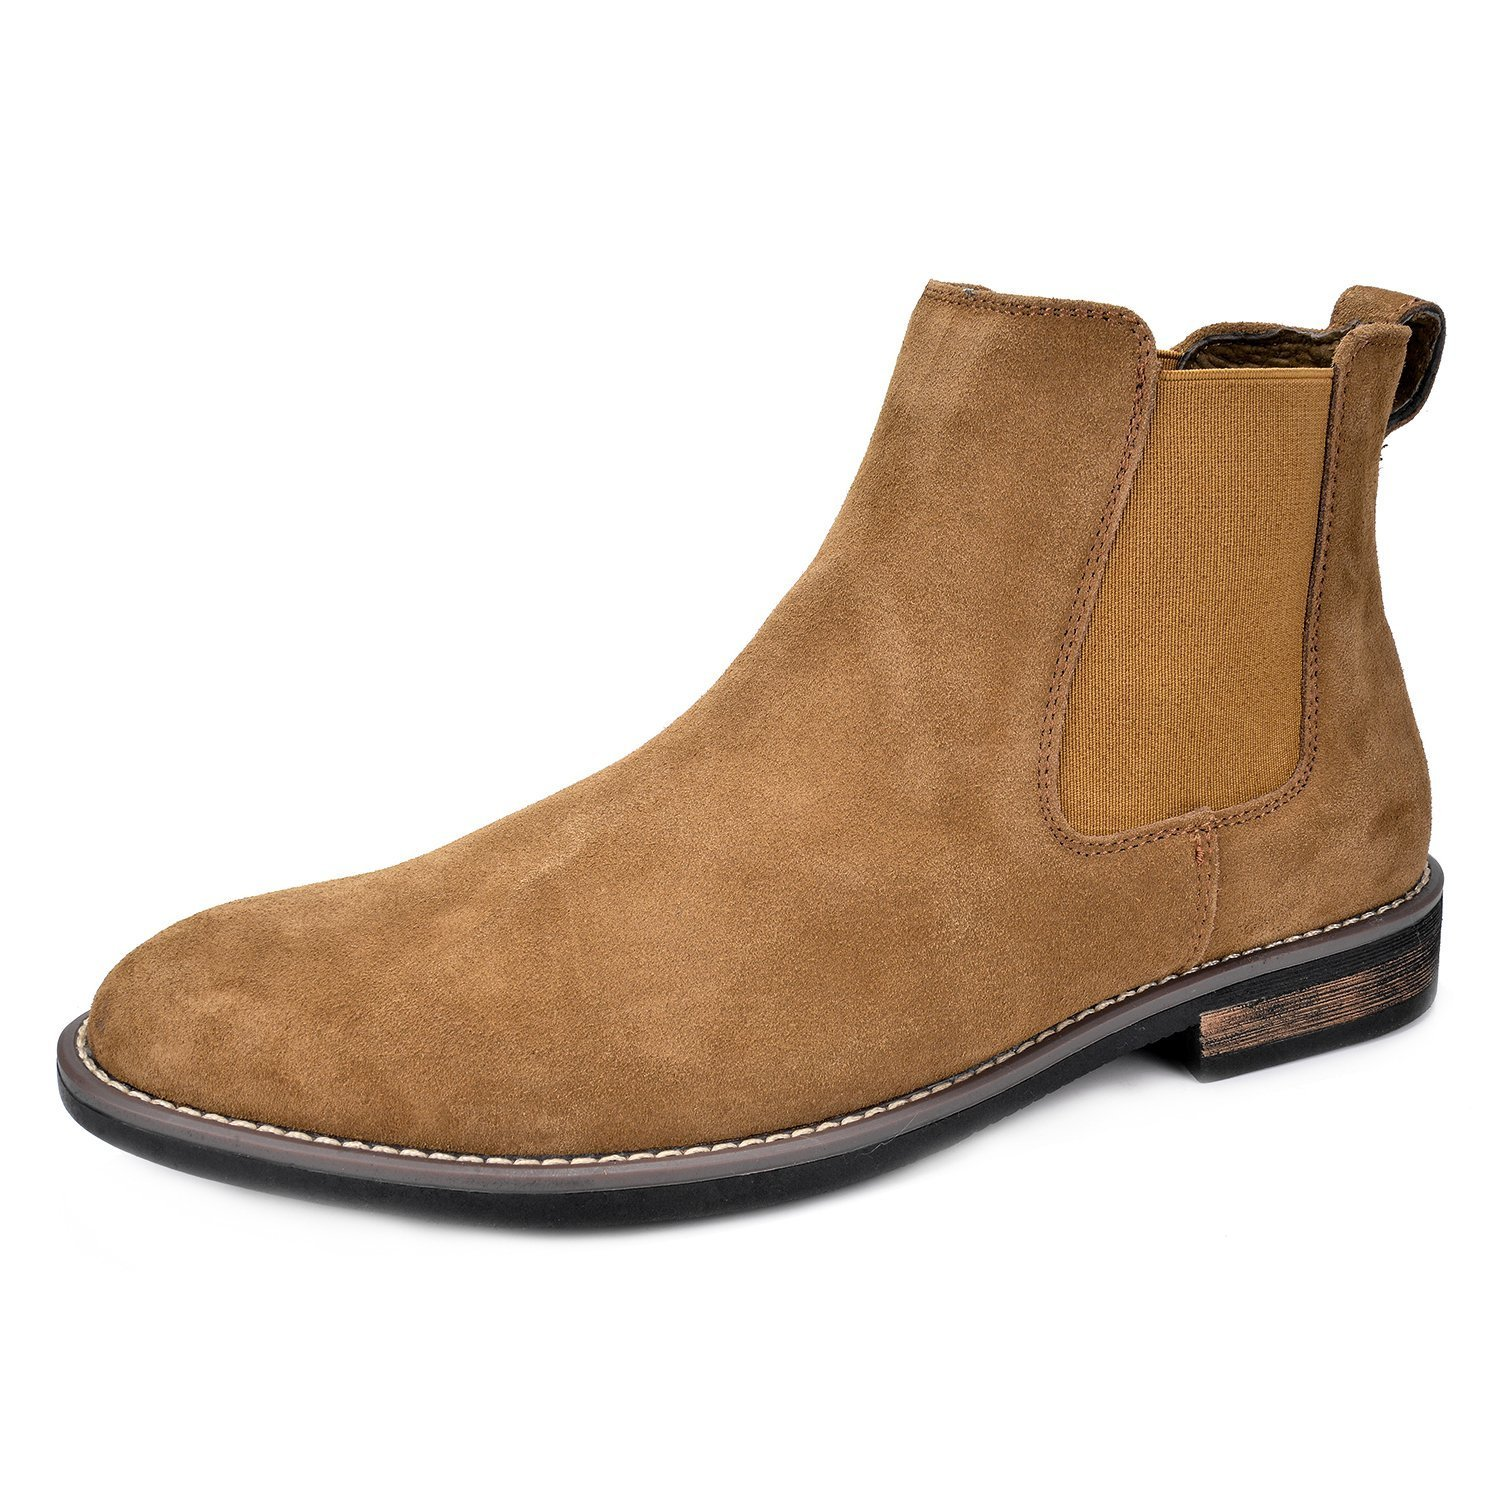 Bruno Marc Men's Urban-06 Tan Suede Leather Chukka Ankle Boots - 12 M US